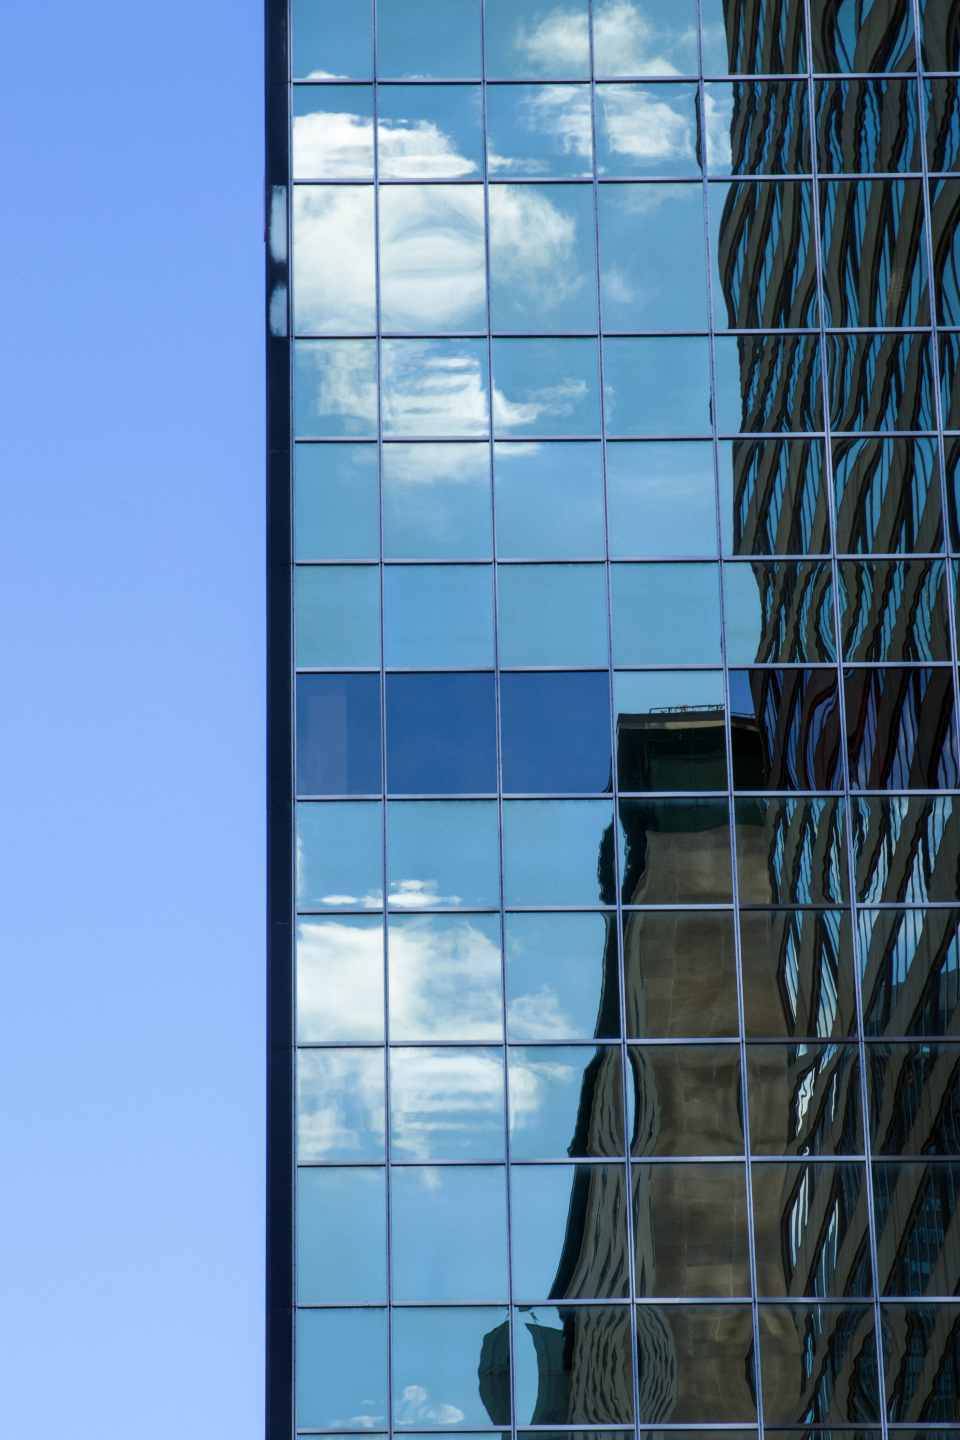 skyscaper city building tall downtown architecture modern urban glass exterior reflection structure business office sky clouds